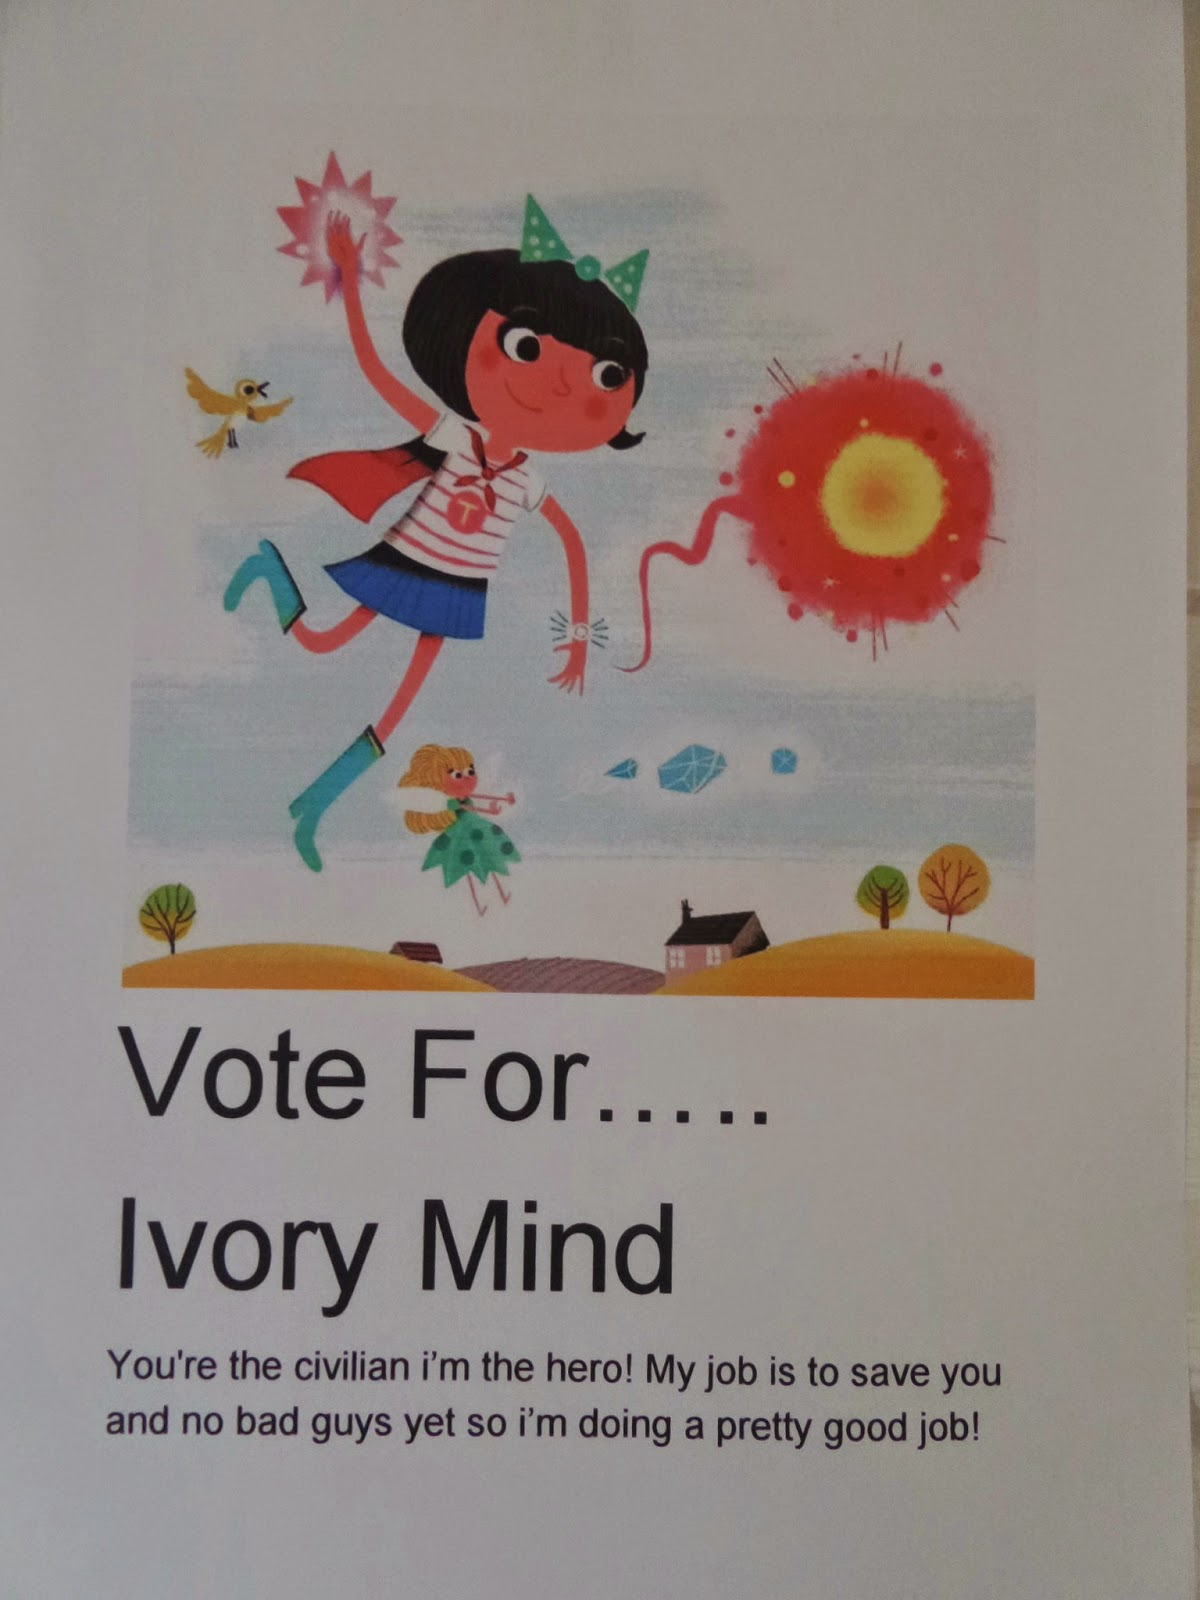 Vote For..... Ivory Mind